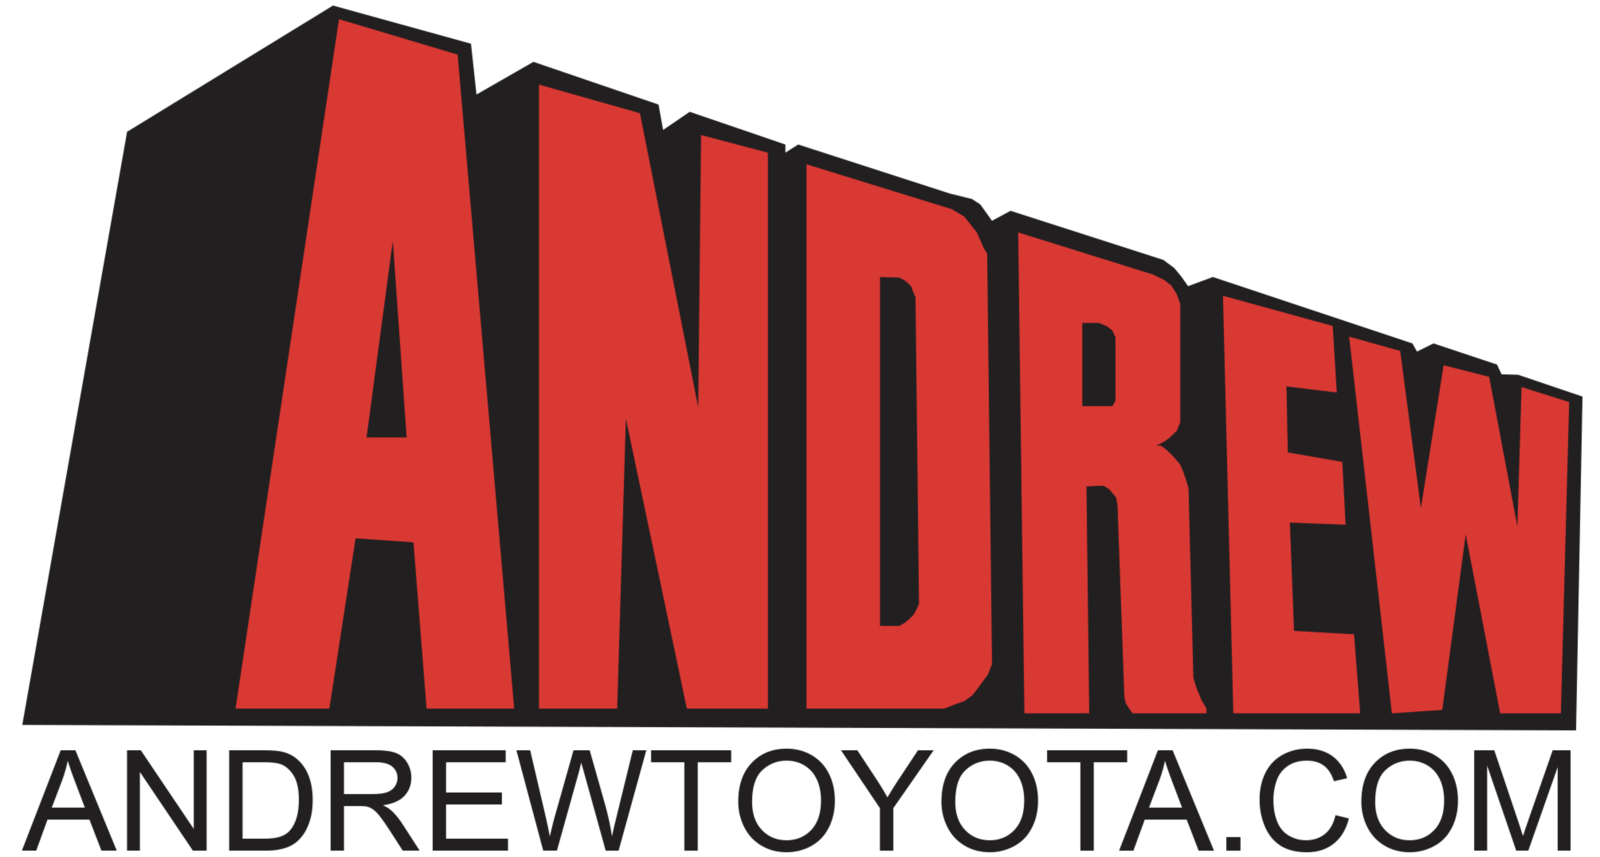 Andrew Toyota - Milwaukee, WI: Read Consumer reviews, Browse Used ...